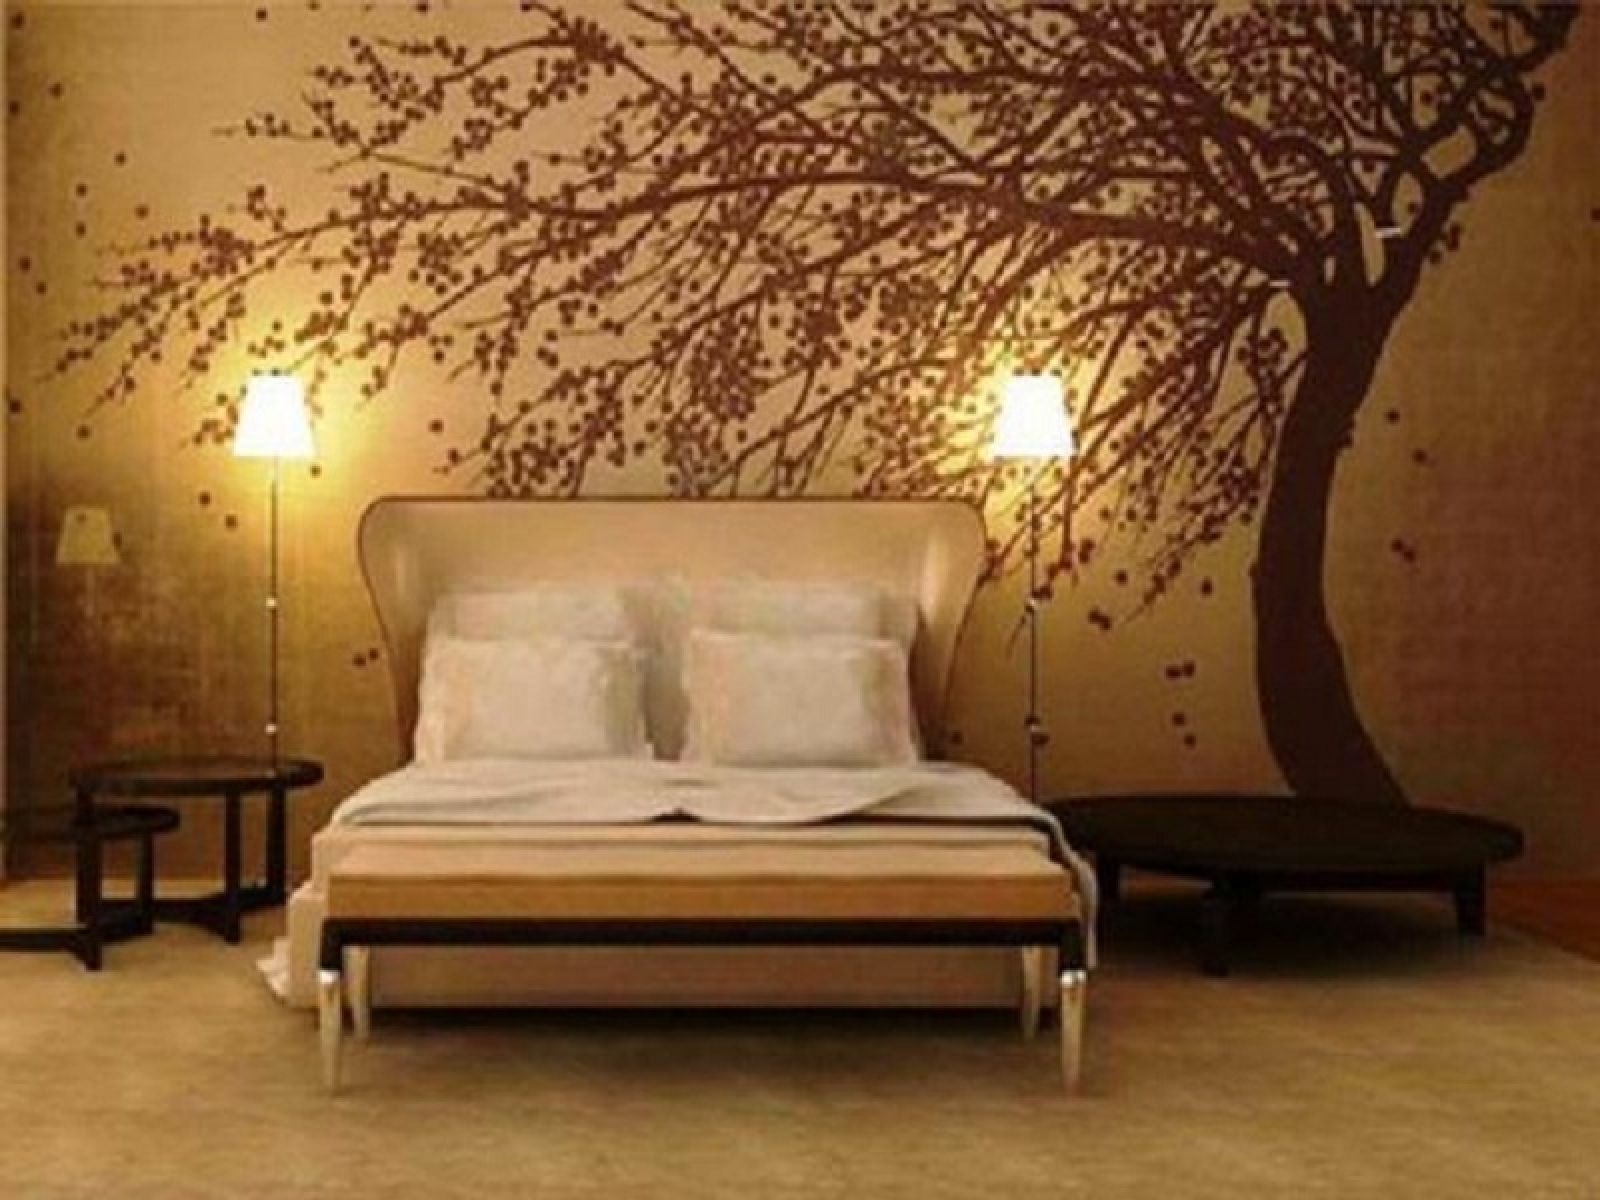 30 Best Wallpaper Designs For Bedrooms UK 2015